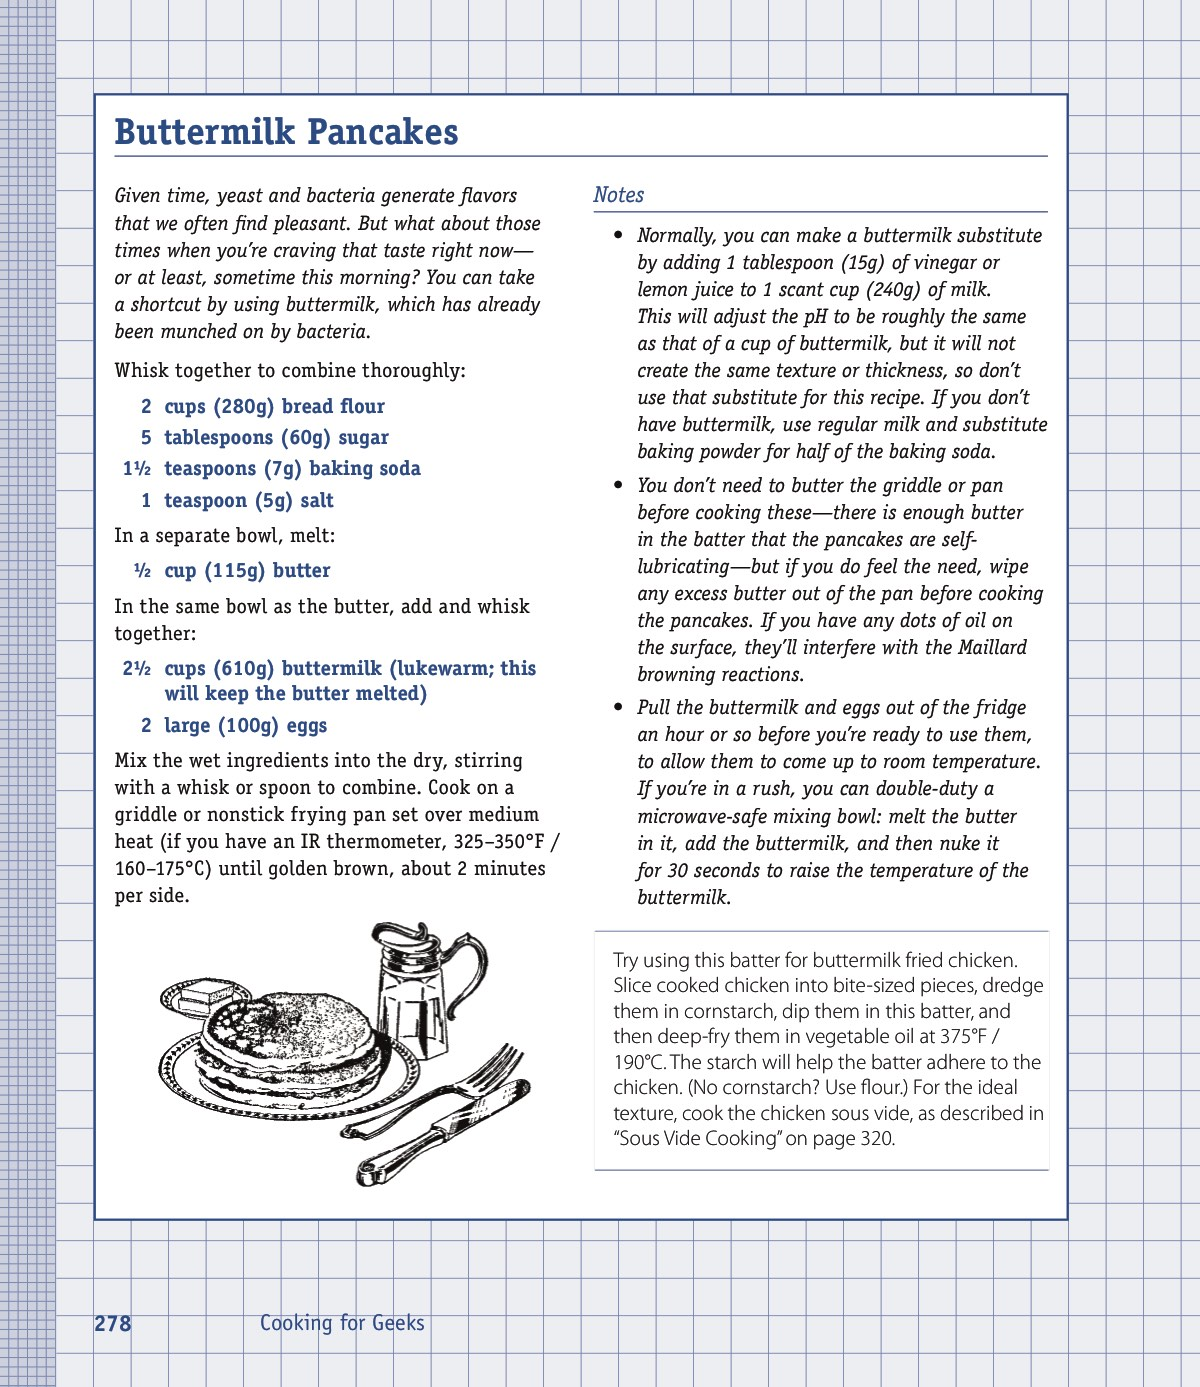 Cooking for Geeks - Page 278